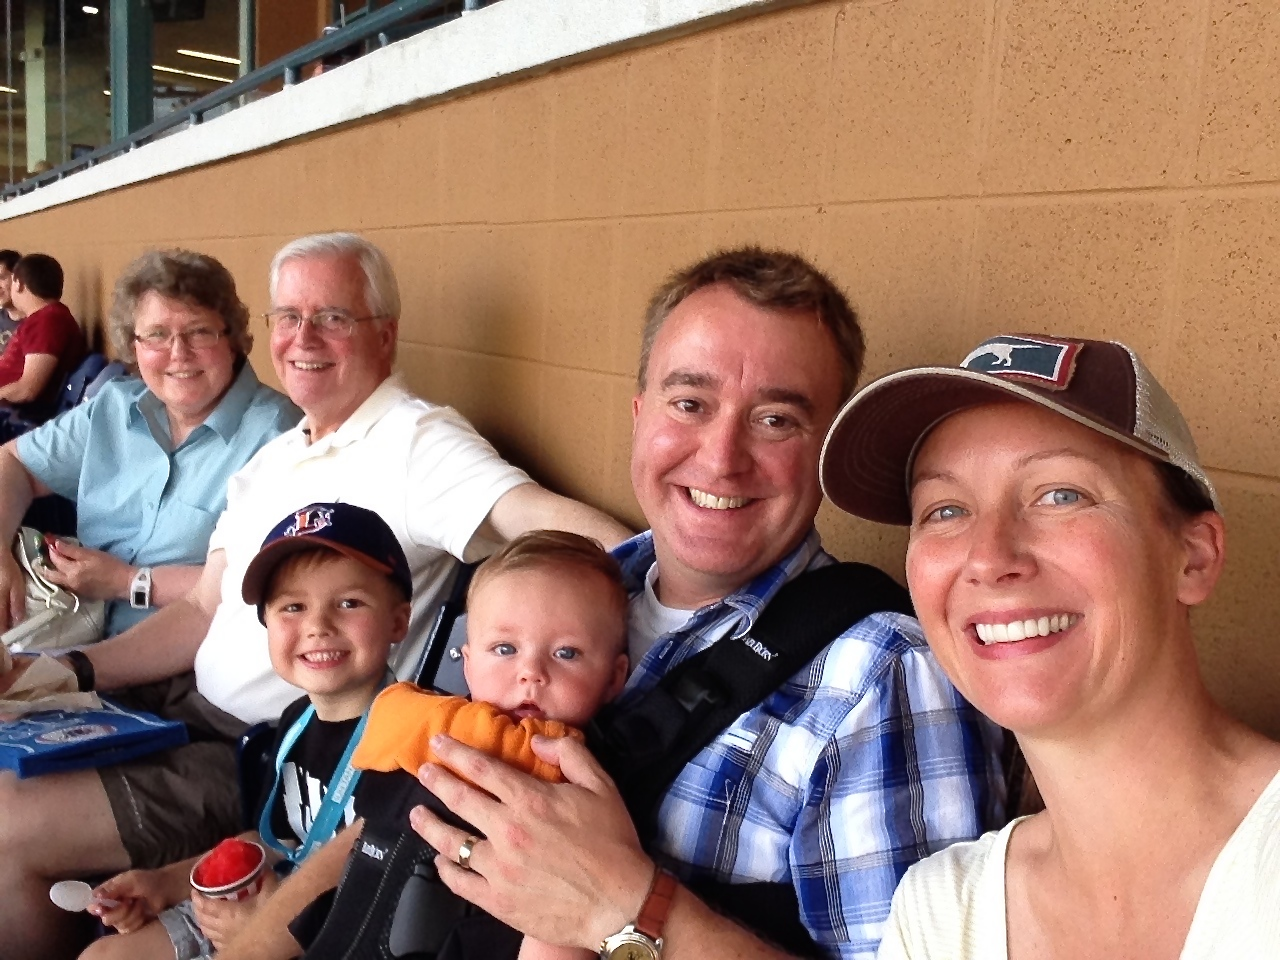 A family selfie at the Durham Bulls game